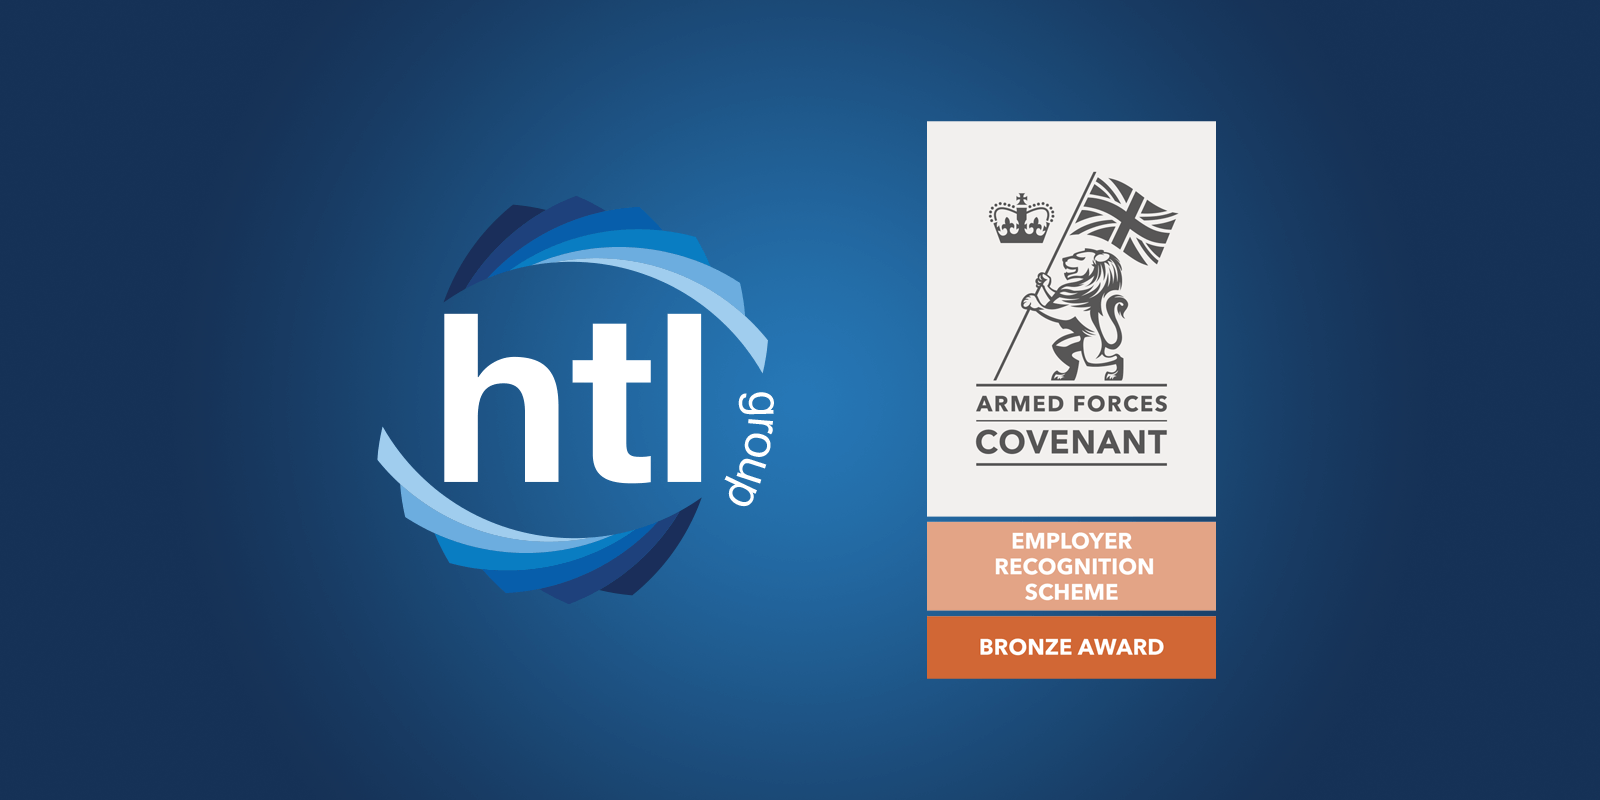 HTL is awarded the Bronze Award for the Employer Recognition Scheme